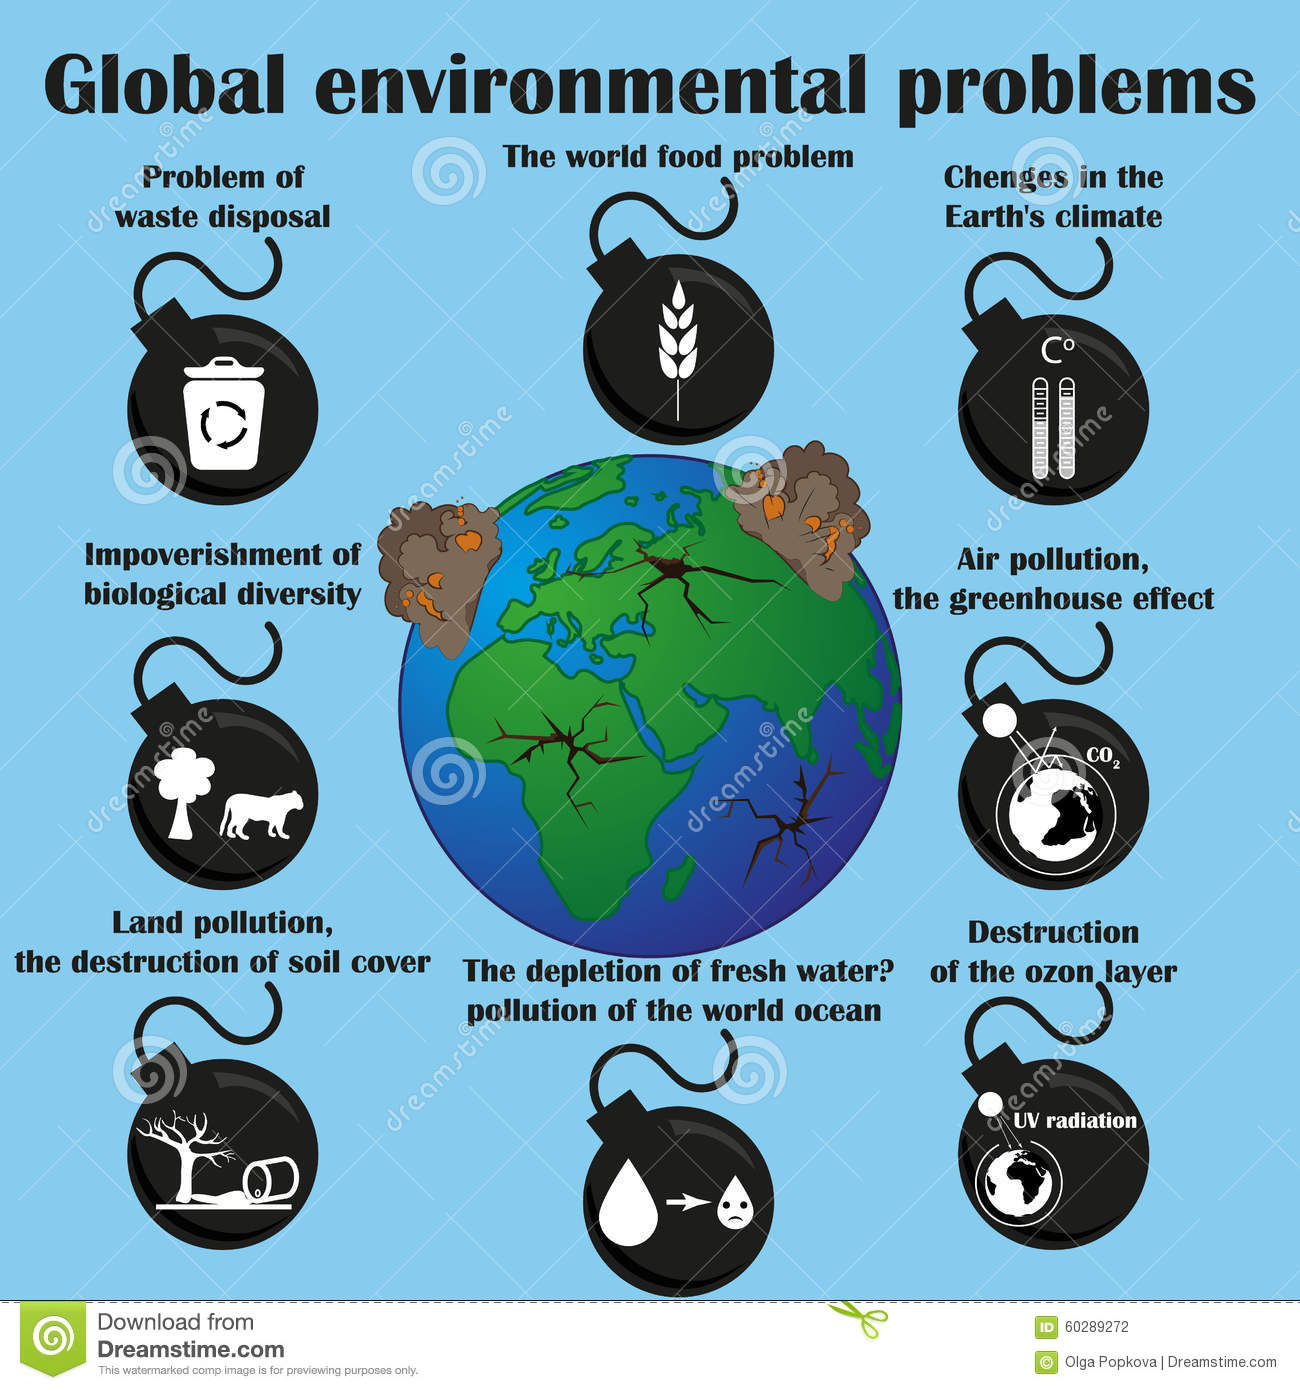 Environment agency infographic